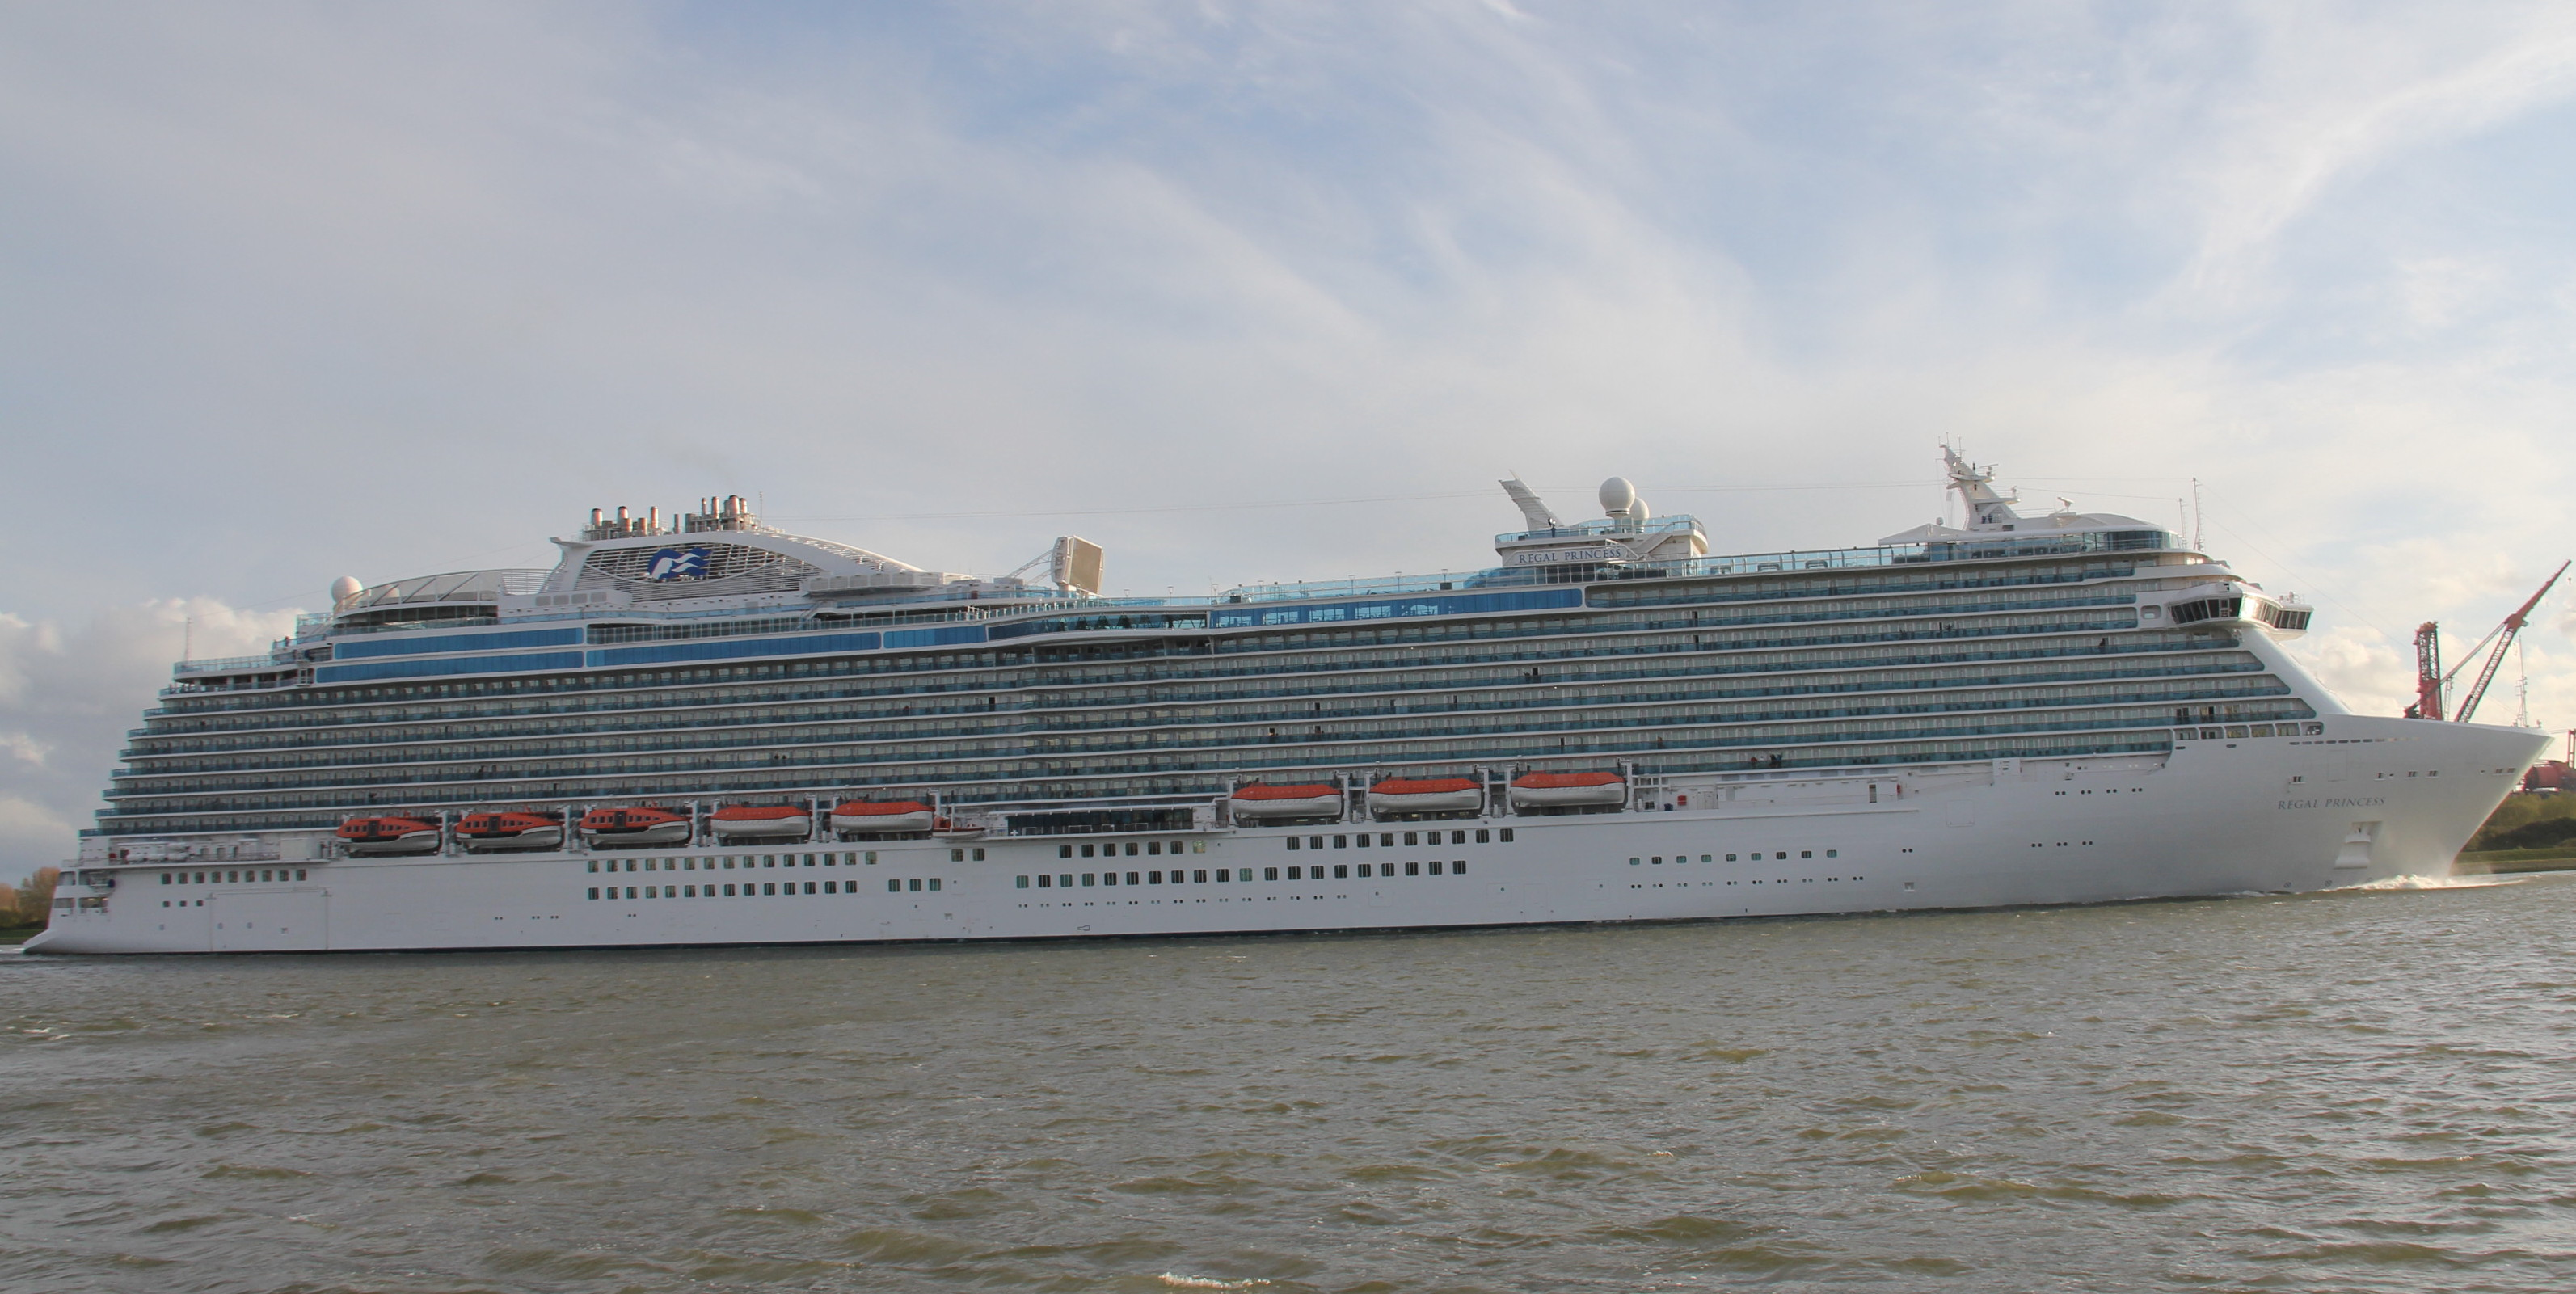 regalprincess04.jpg